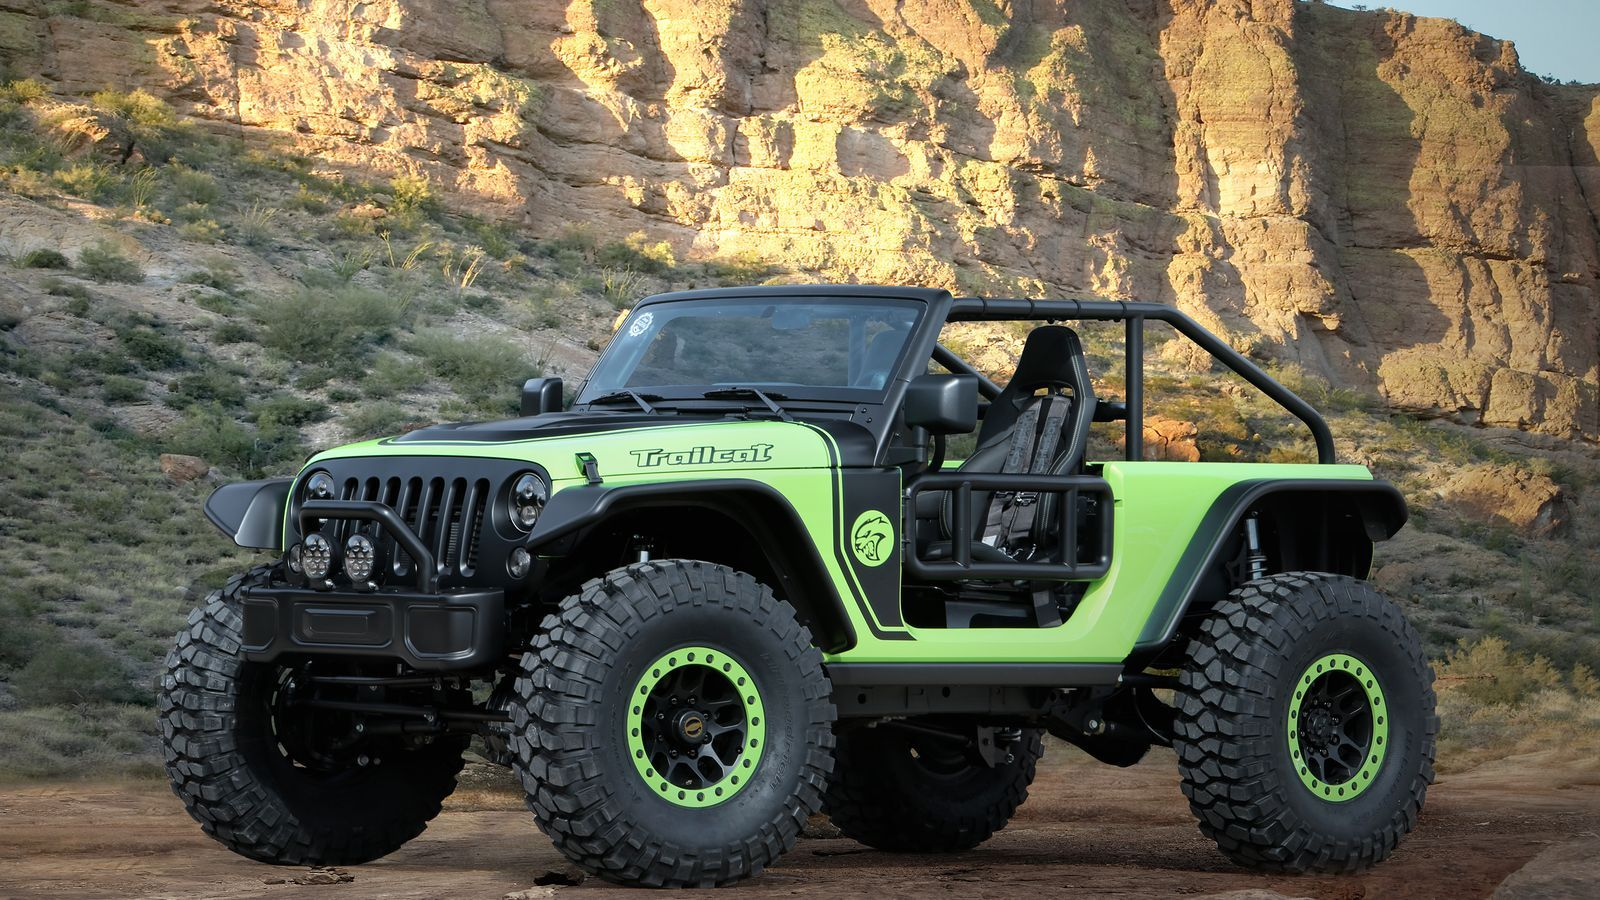 Jeep Stuffed A 707 Horsepower Engine In A Wrangler Just For Fun